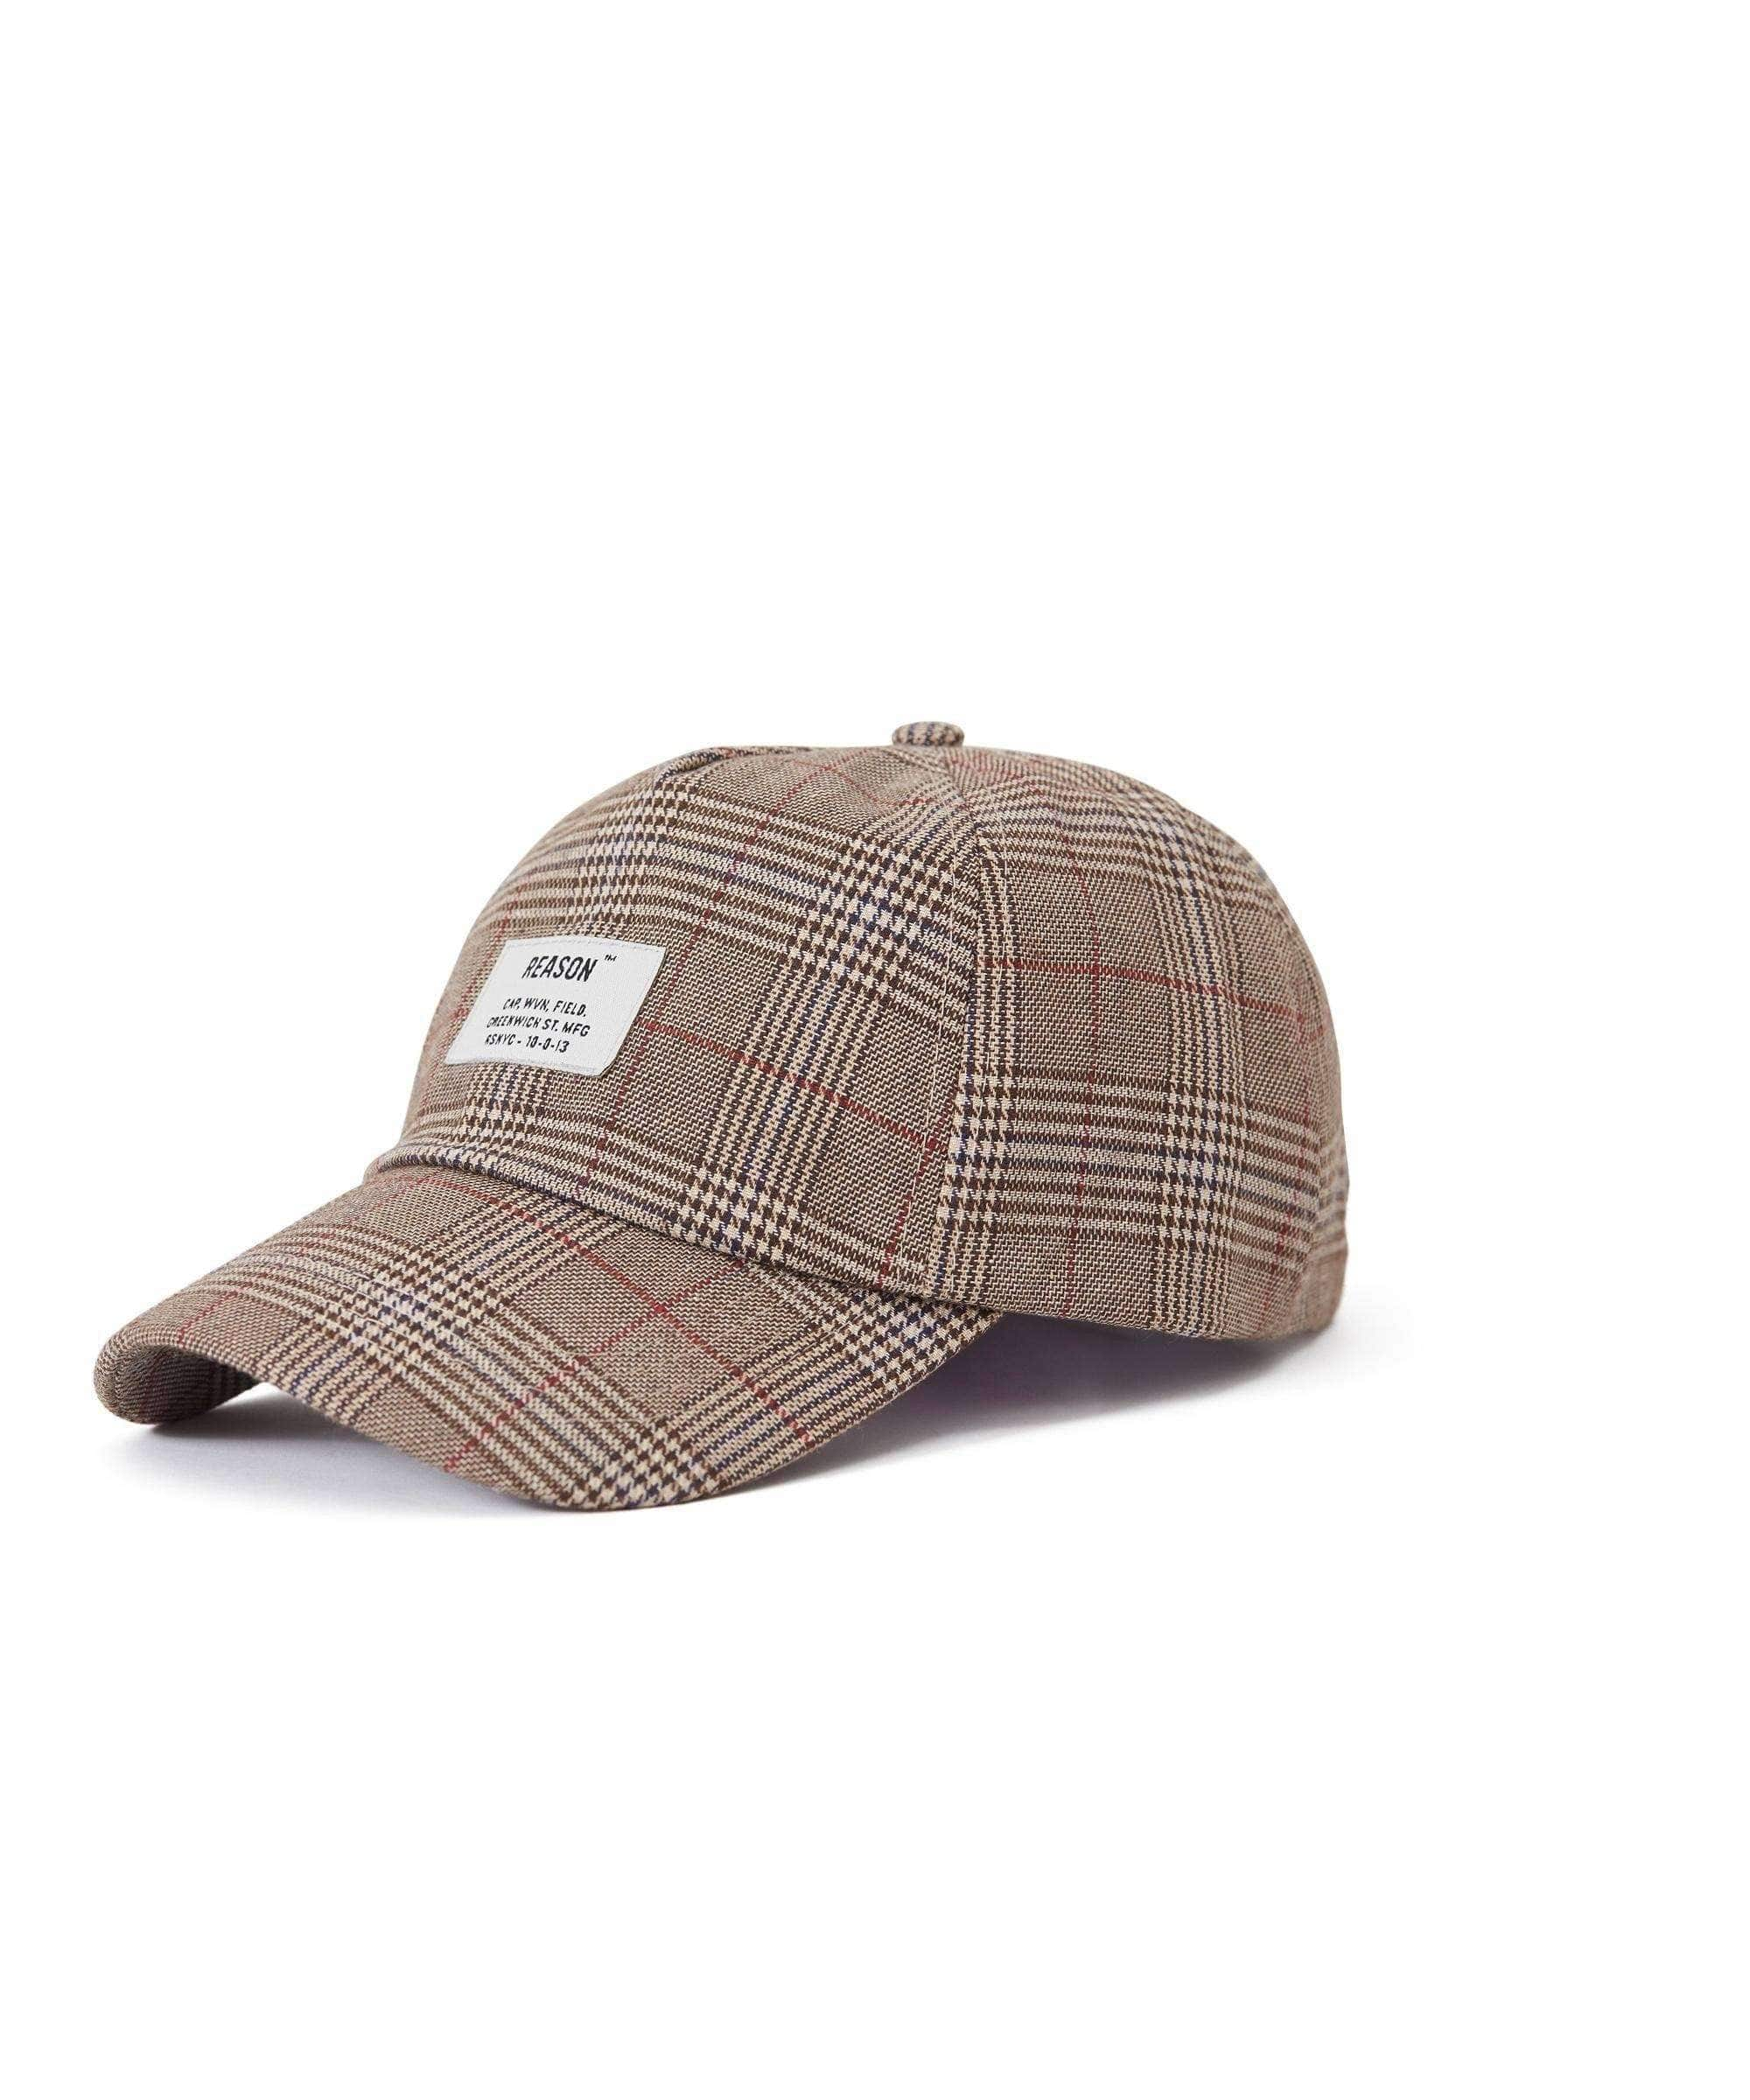 CHECK CAP - BEIGE - Reason Clothing